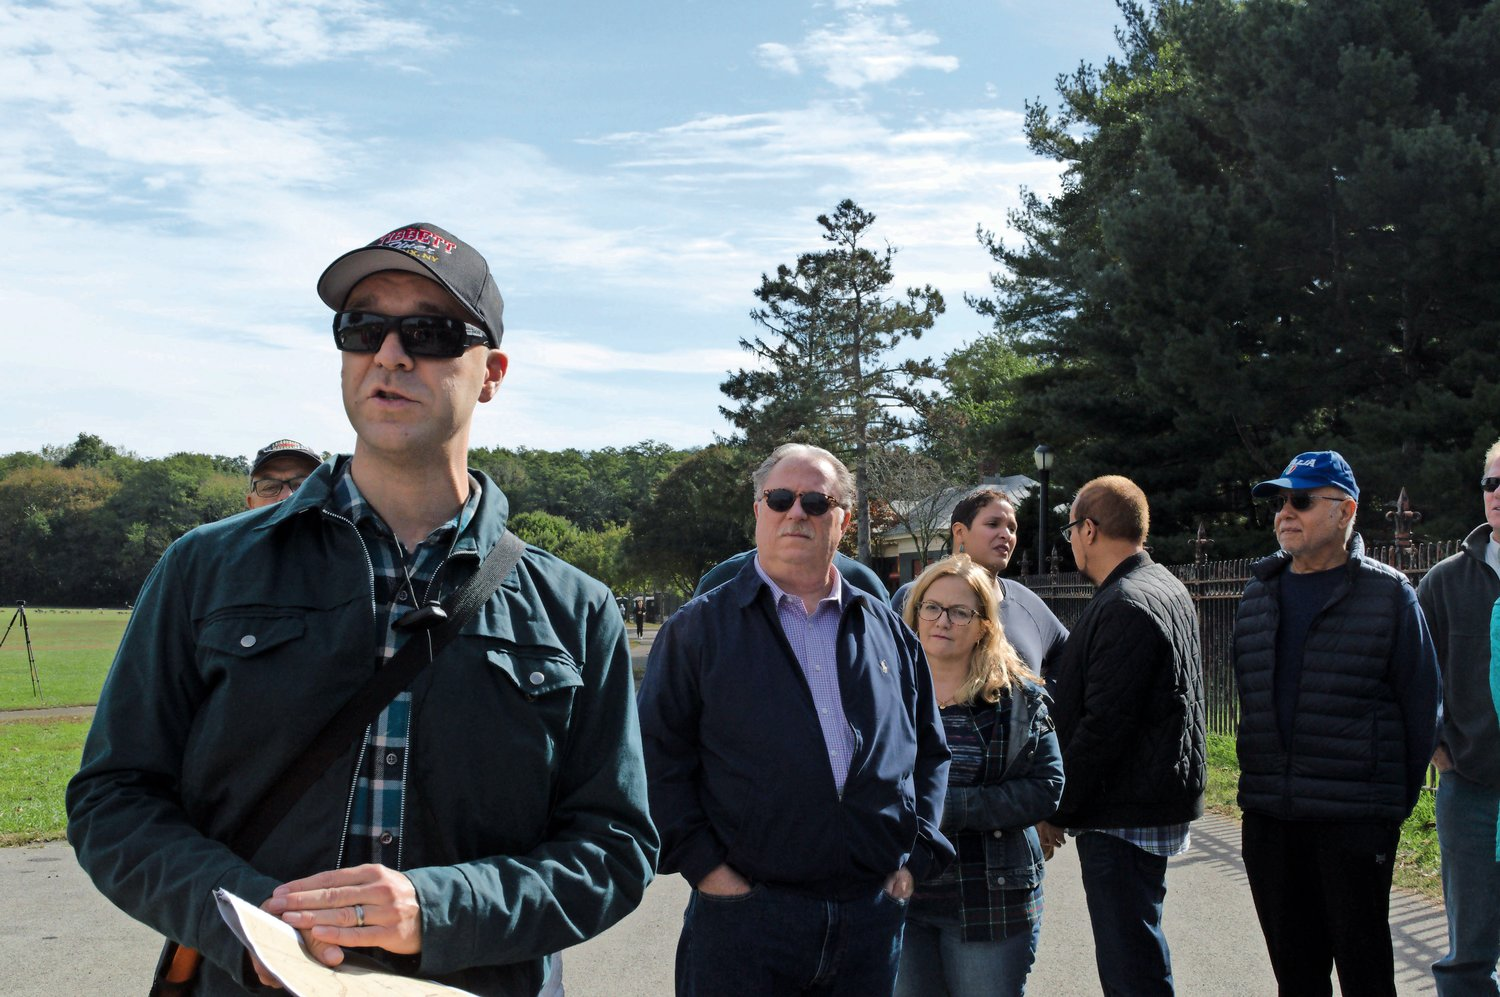 Nick Dembowski, the new president of the Kingsbridge Historical Society, goes over information before the start of the tour of Van Cortlandt Park.